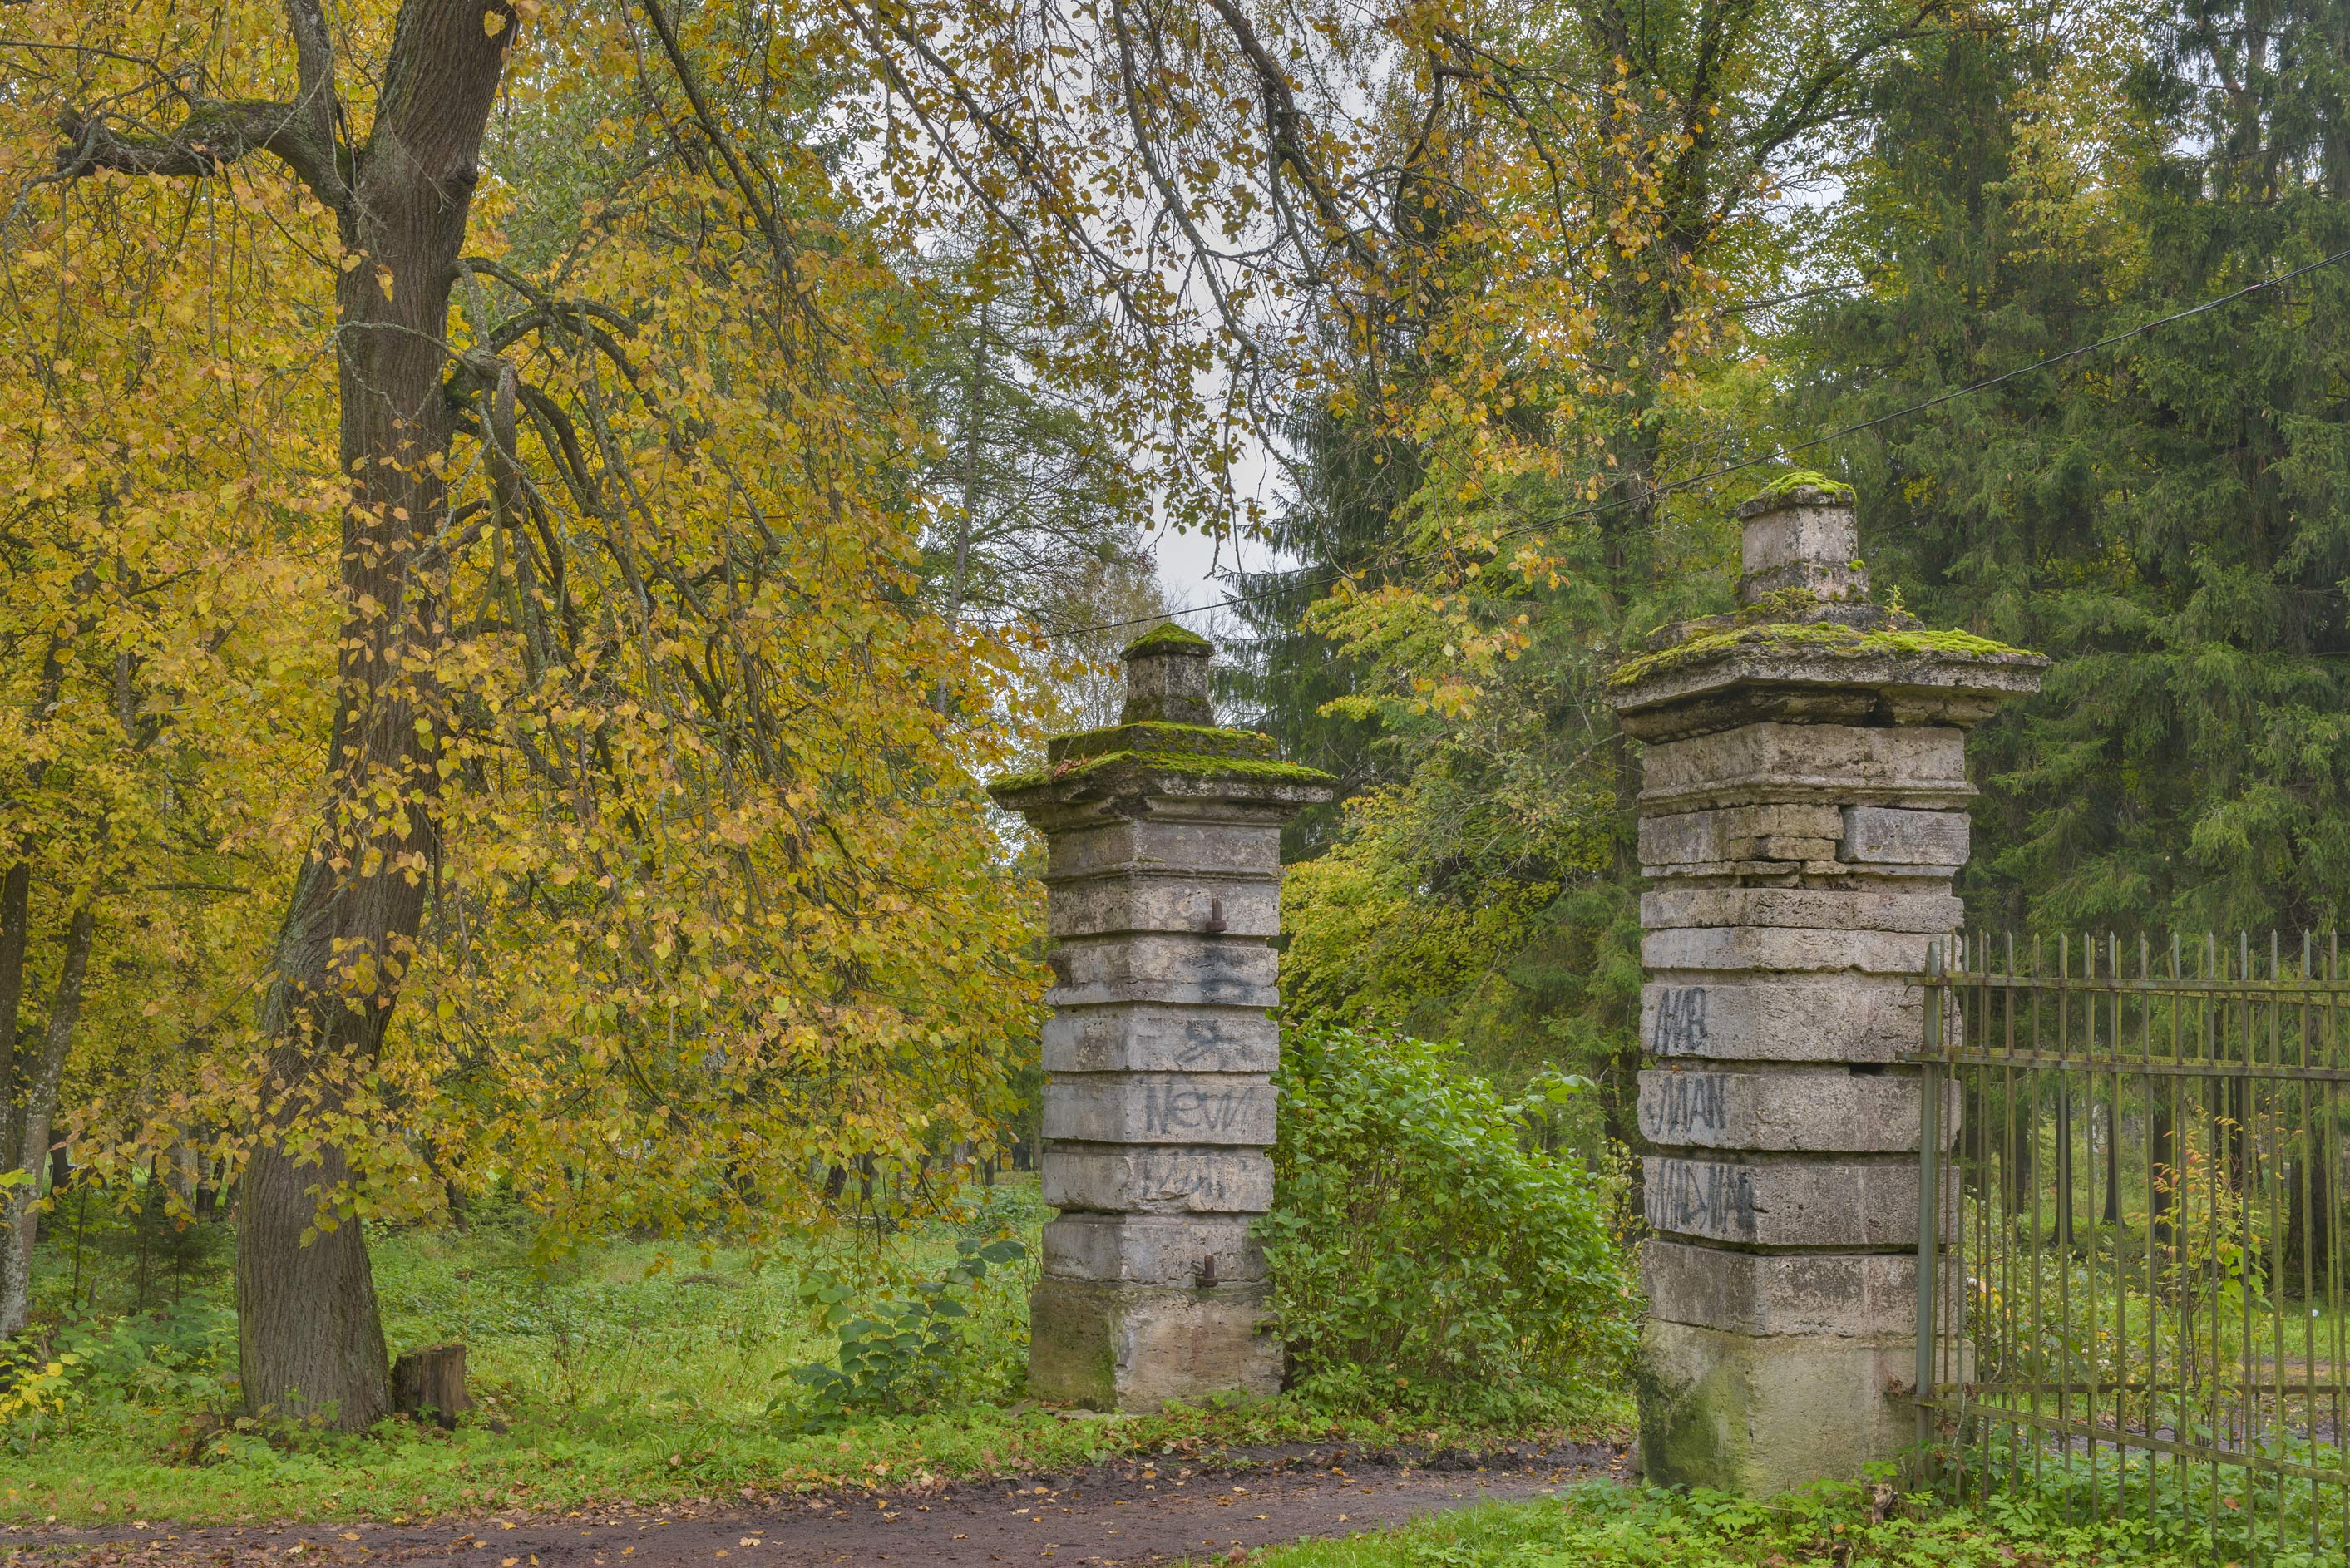 Kaskadskie Gate in Gatchina Park. Gatchina, a suburb of St.Petersburg, Russia